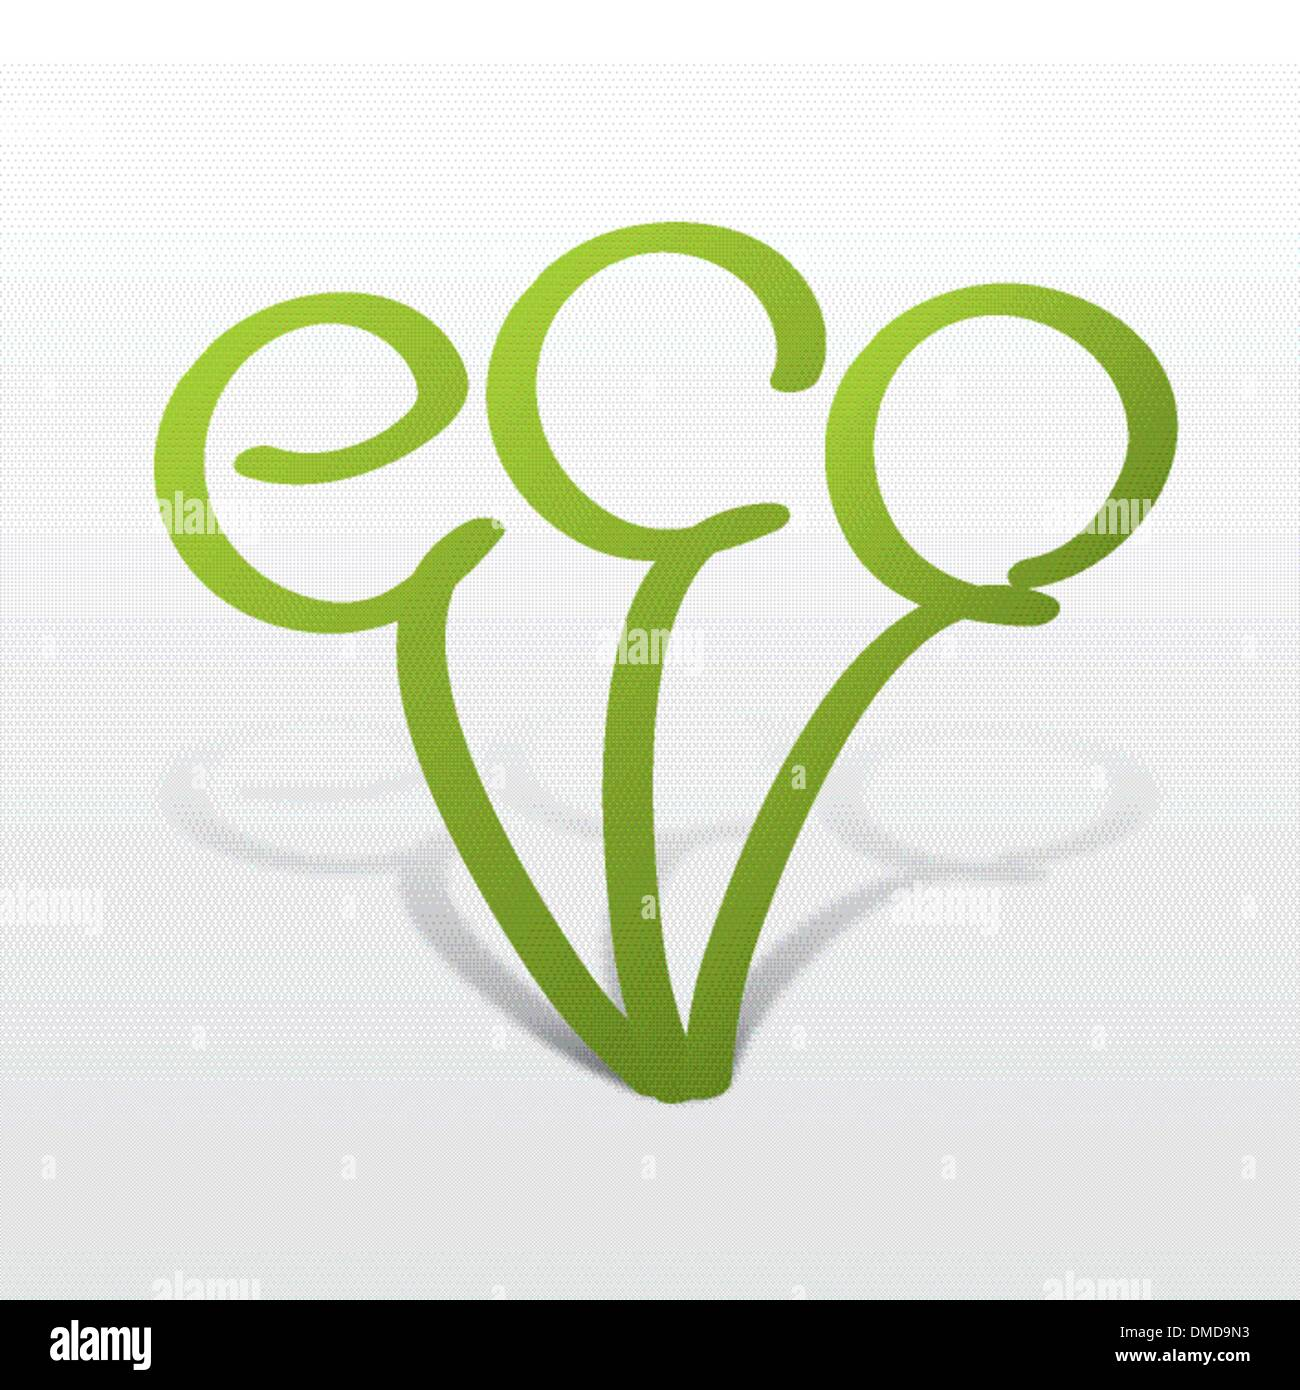 eco icon in the form of a germ - Stock Image